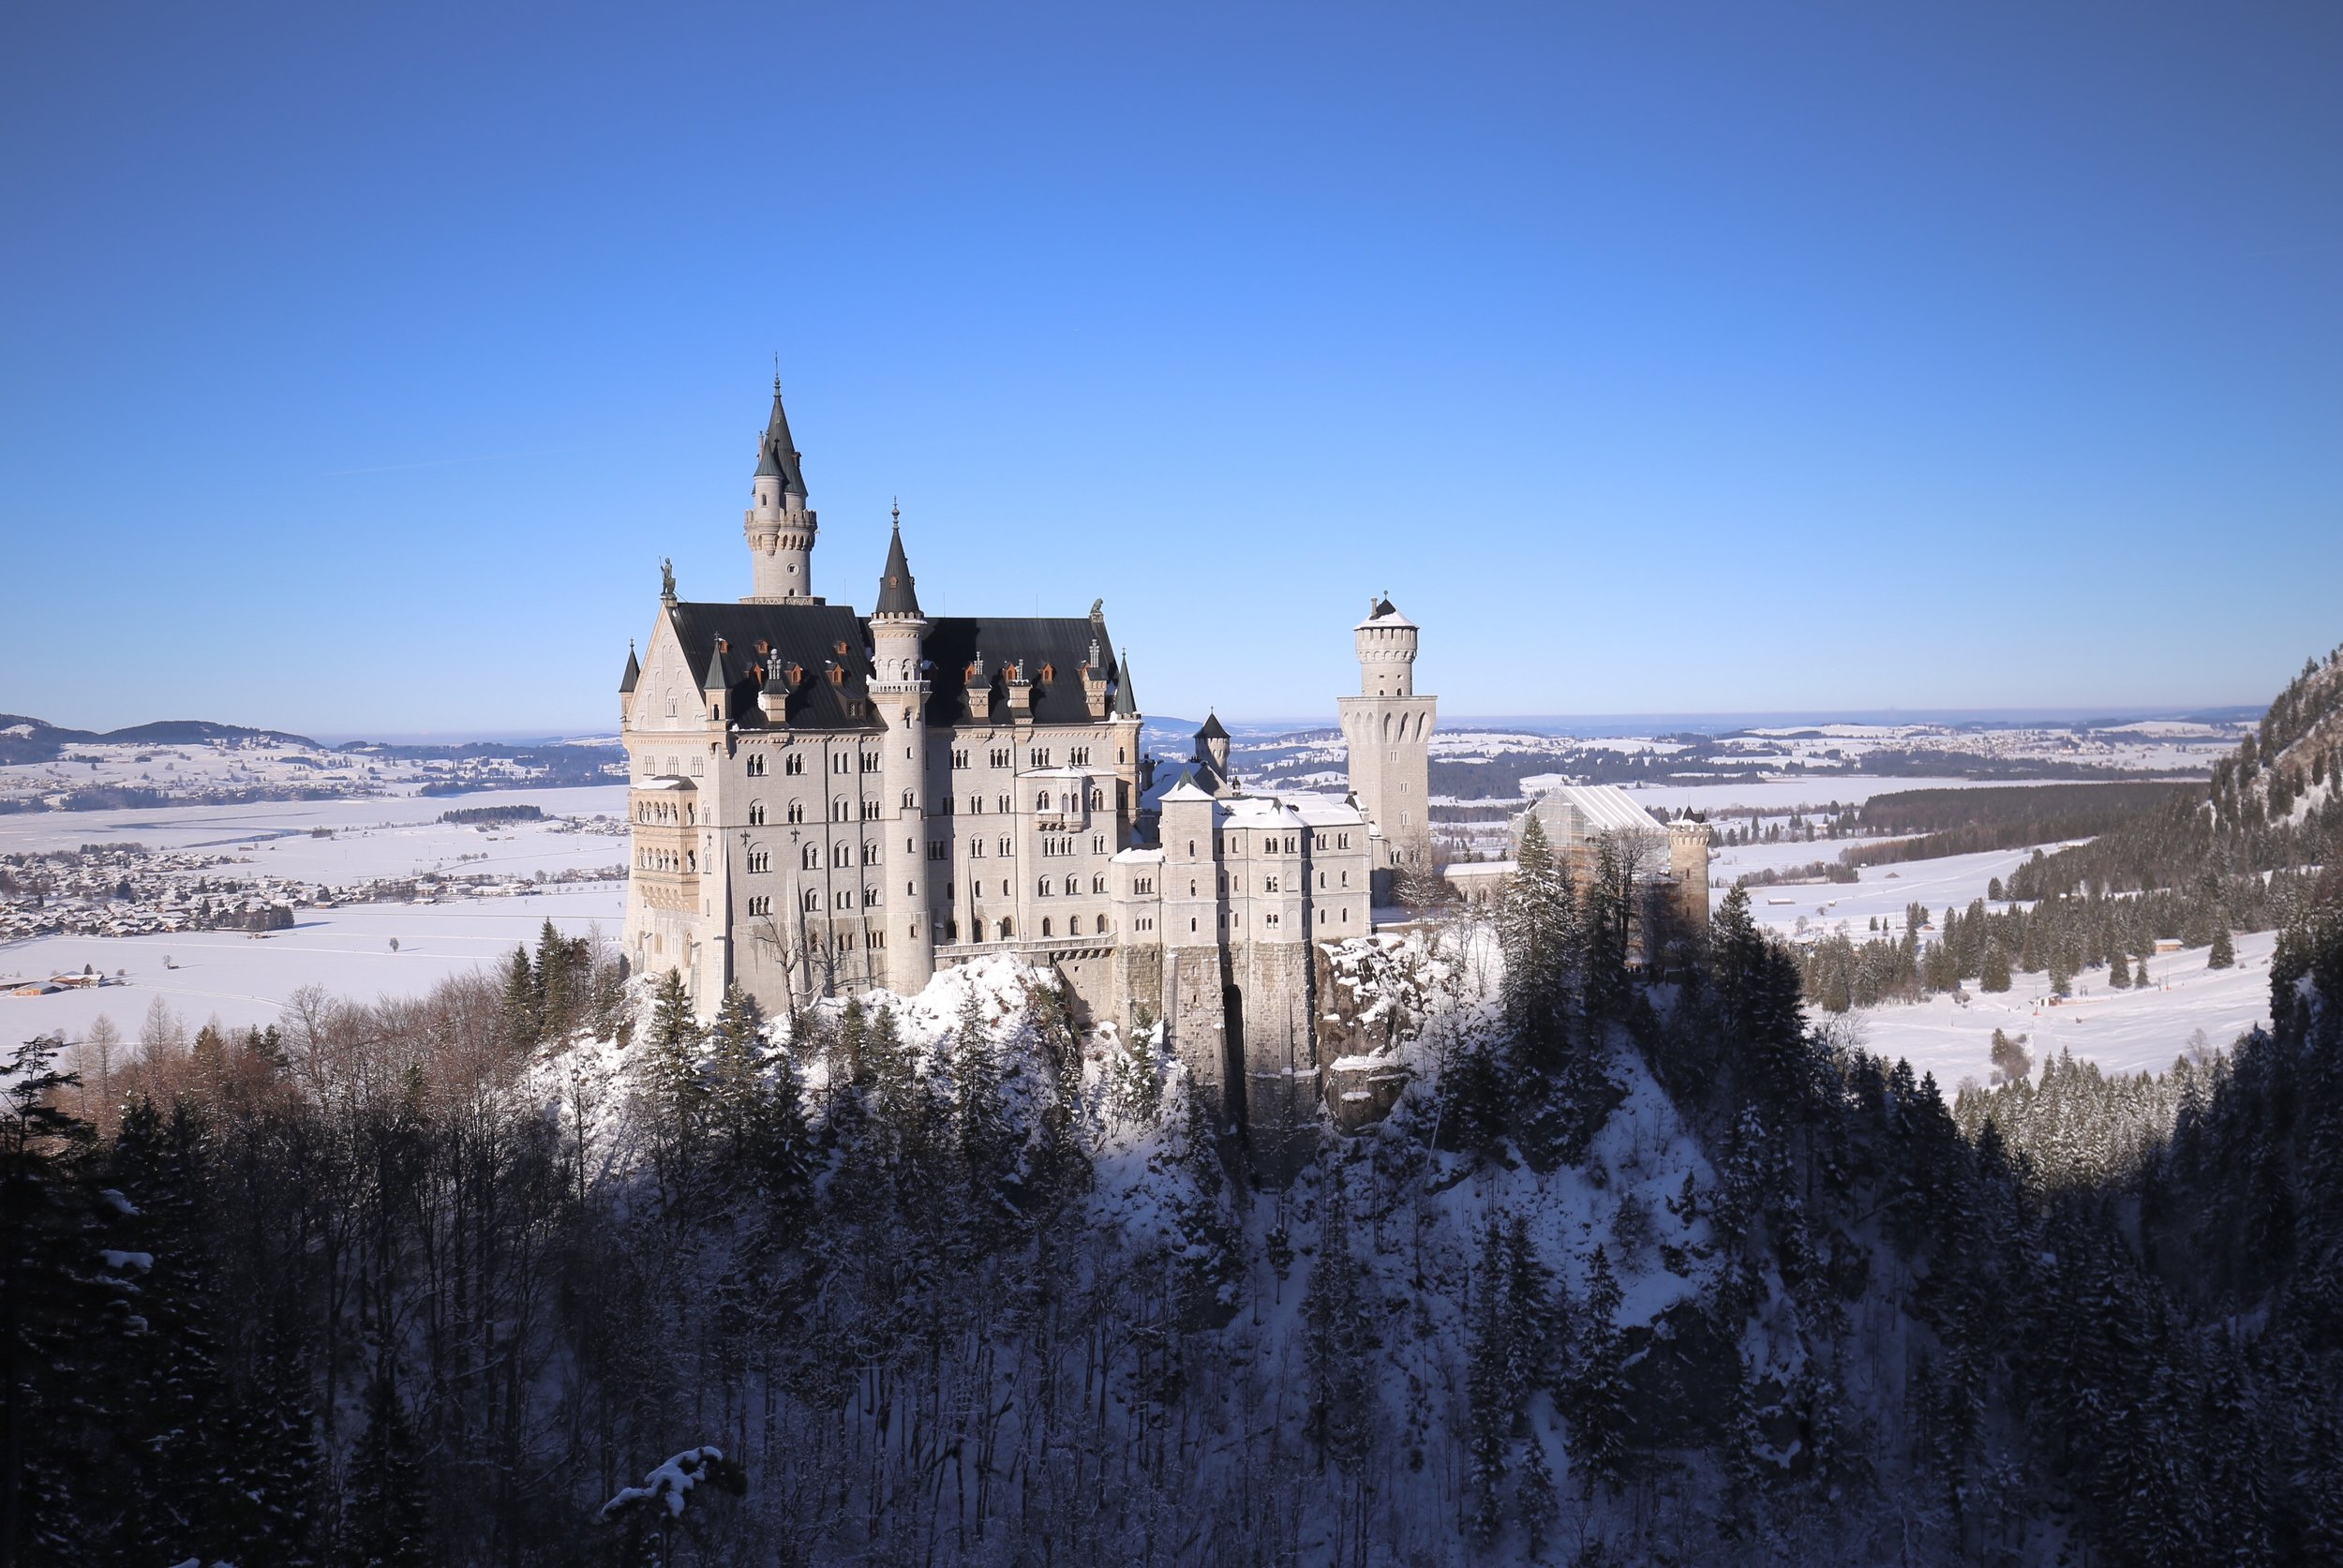 Cinderella's castle - Neuschwanstein castle perched on a rocky cliff surrounded by snow.